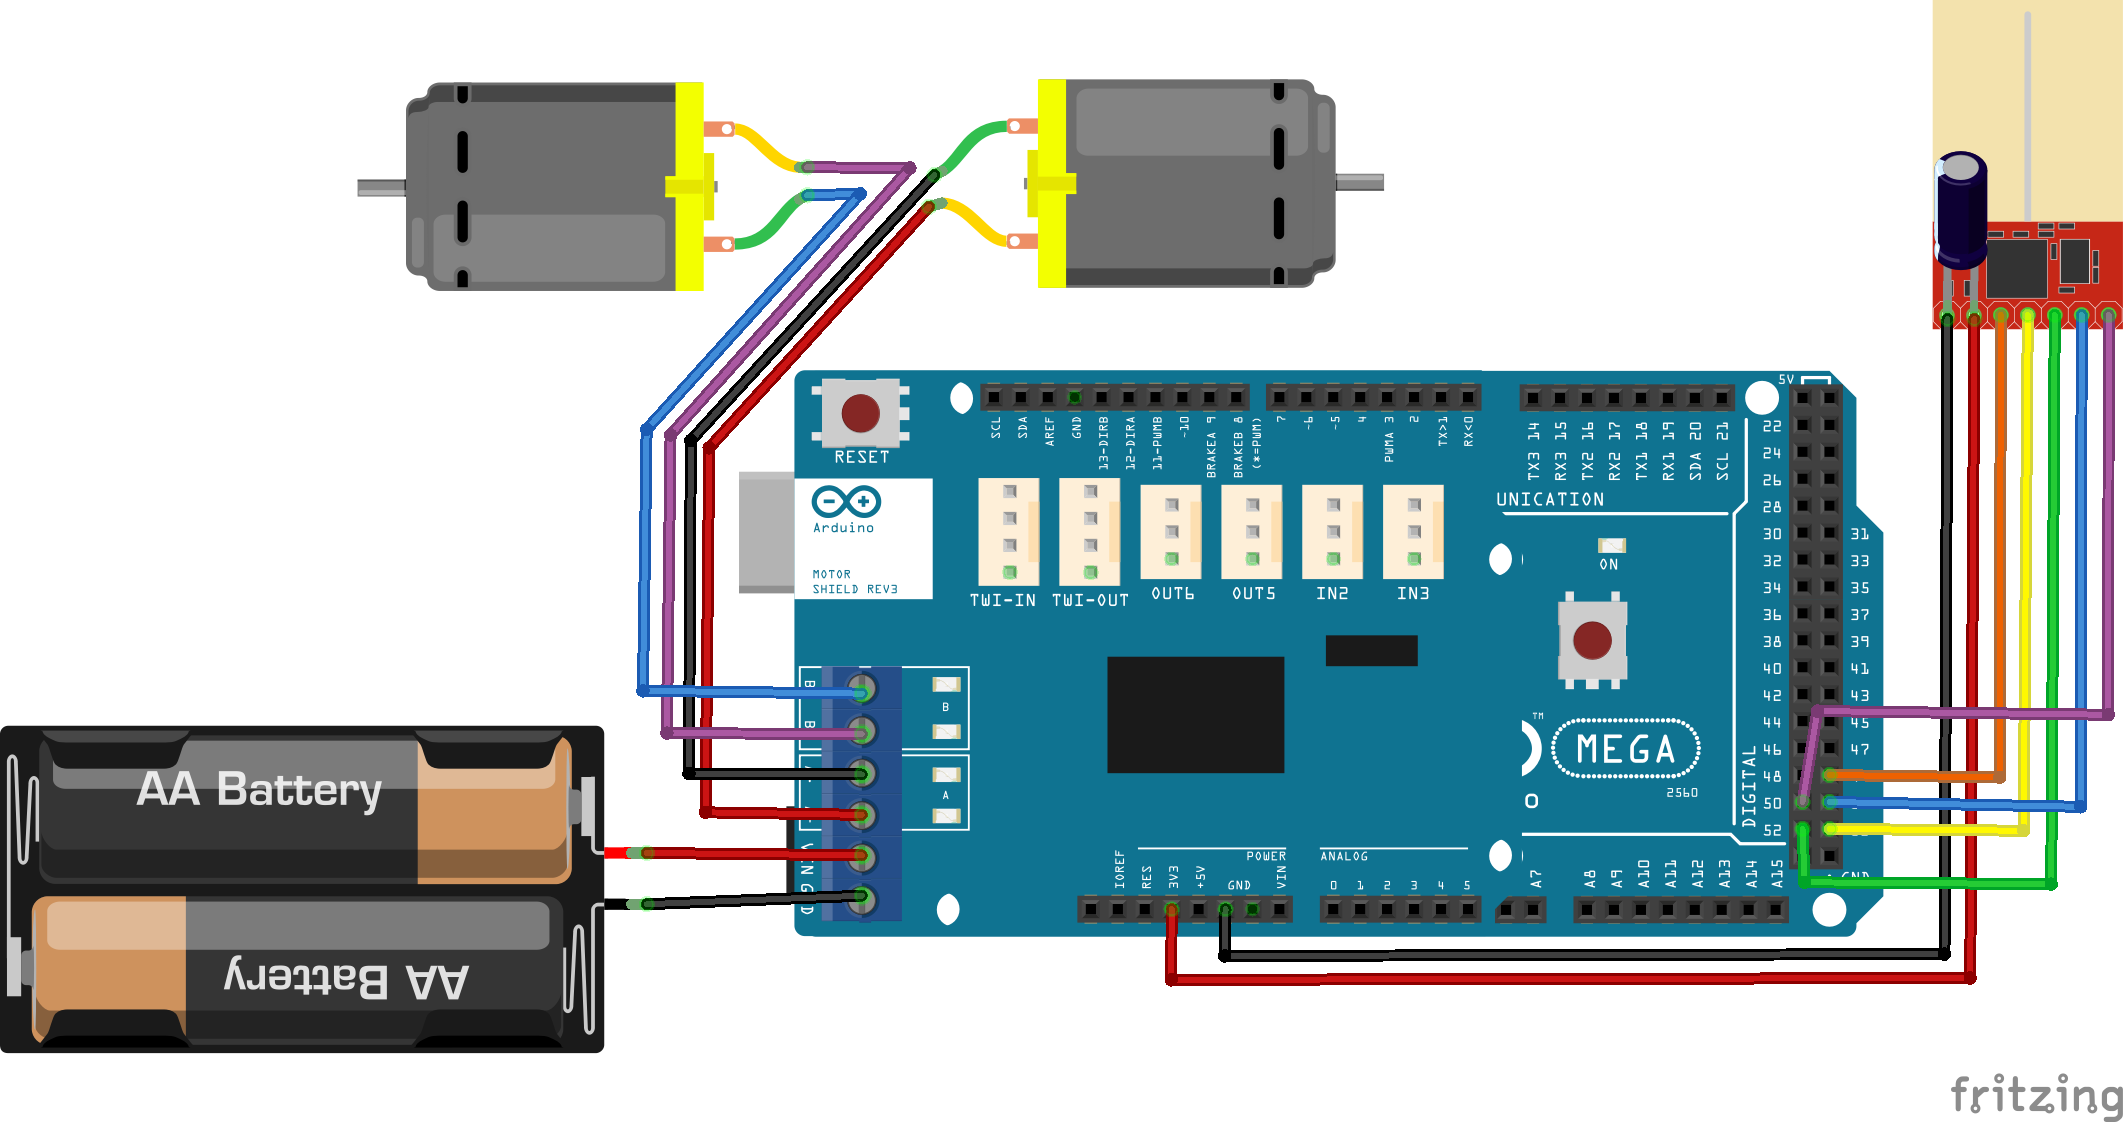 Arduino Nrf24 Dual Drive Motor Remote Controlled Car Here Http Arduinoinfowikispacescom Popularics Scroll Down You Need Is A Cell Phone Charger And Cable To Charge It Then Just Use Standard Usb Plug Into Your Controller Very Convenient